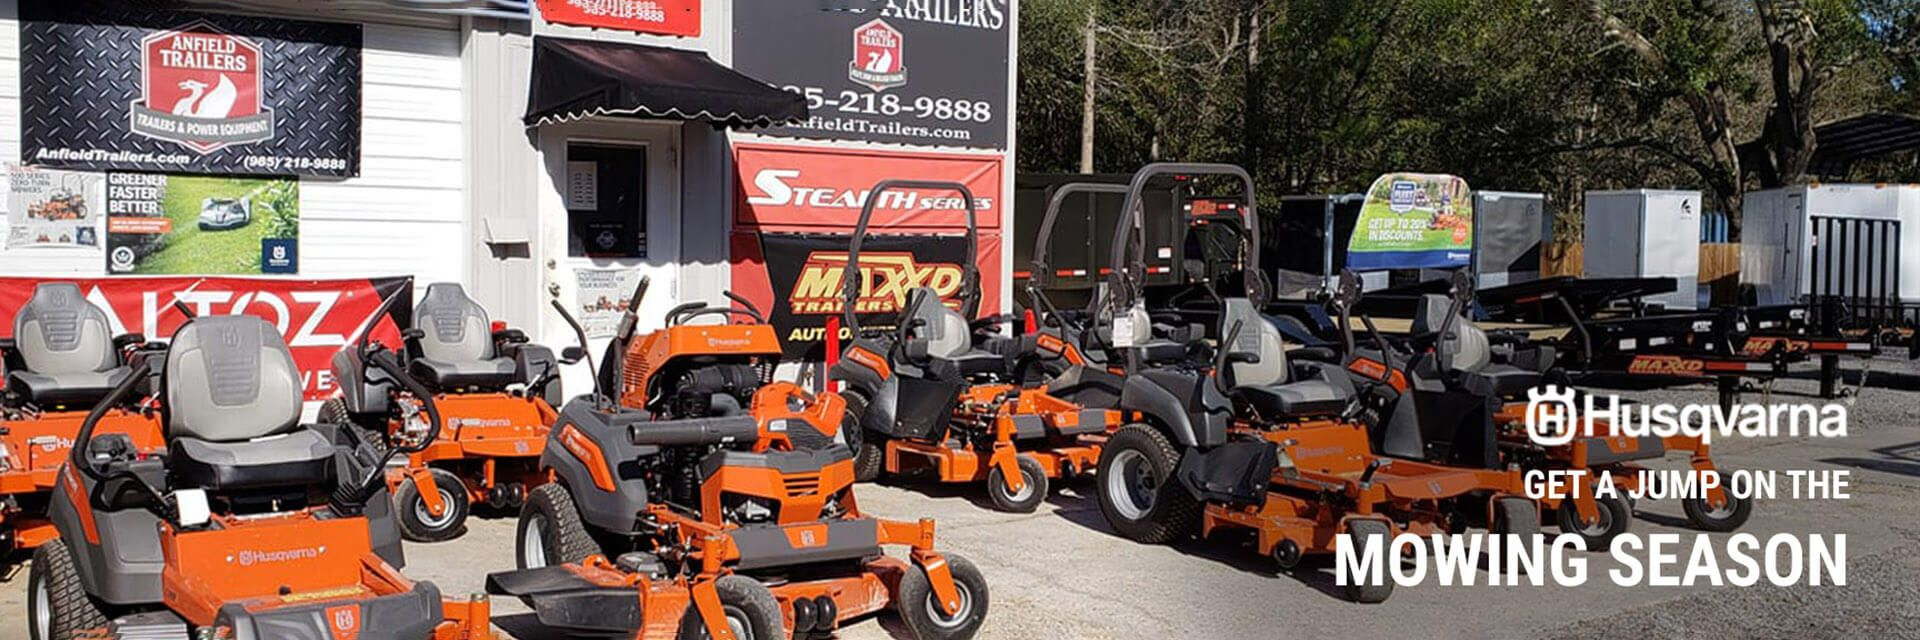 Husqvarna | Get a jump on MOWING SEASON with Anfield Trailers in Lacombe, LA